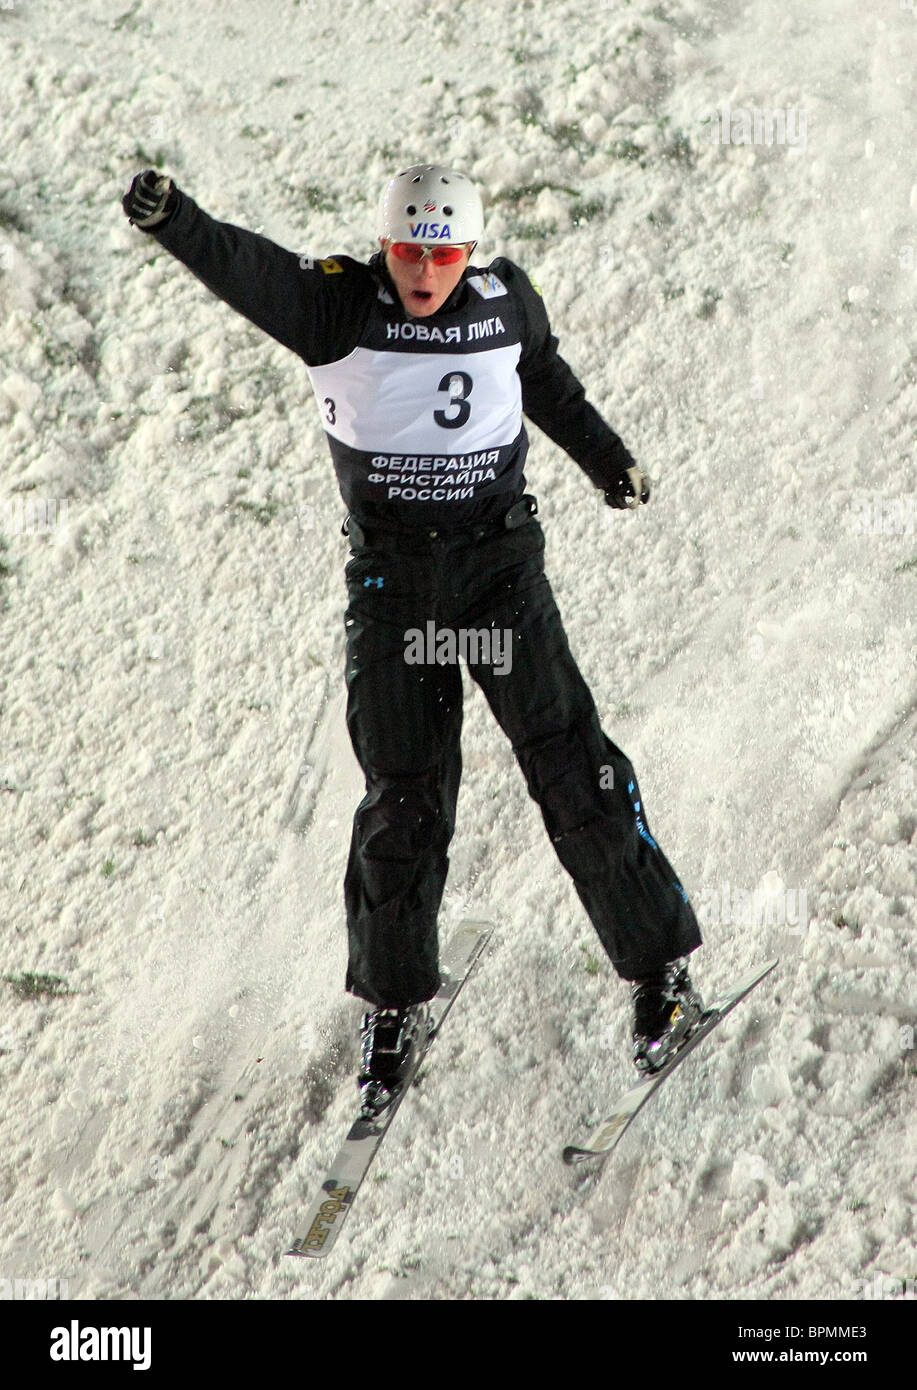 Moscow hosts FIS World Cup final stage, freestyle 'ski acrobatics' - Stock Image